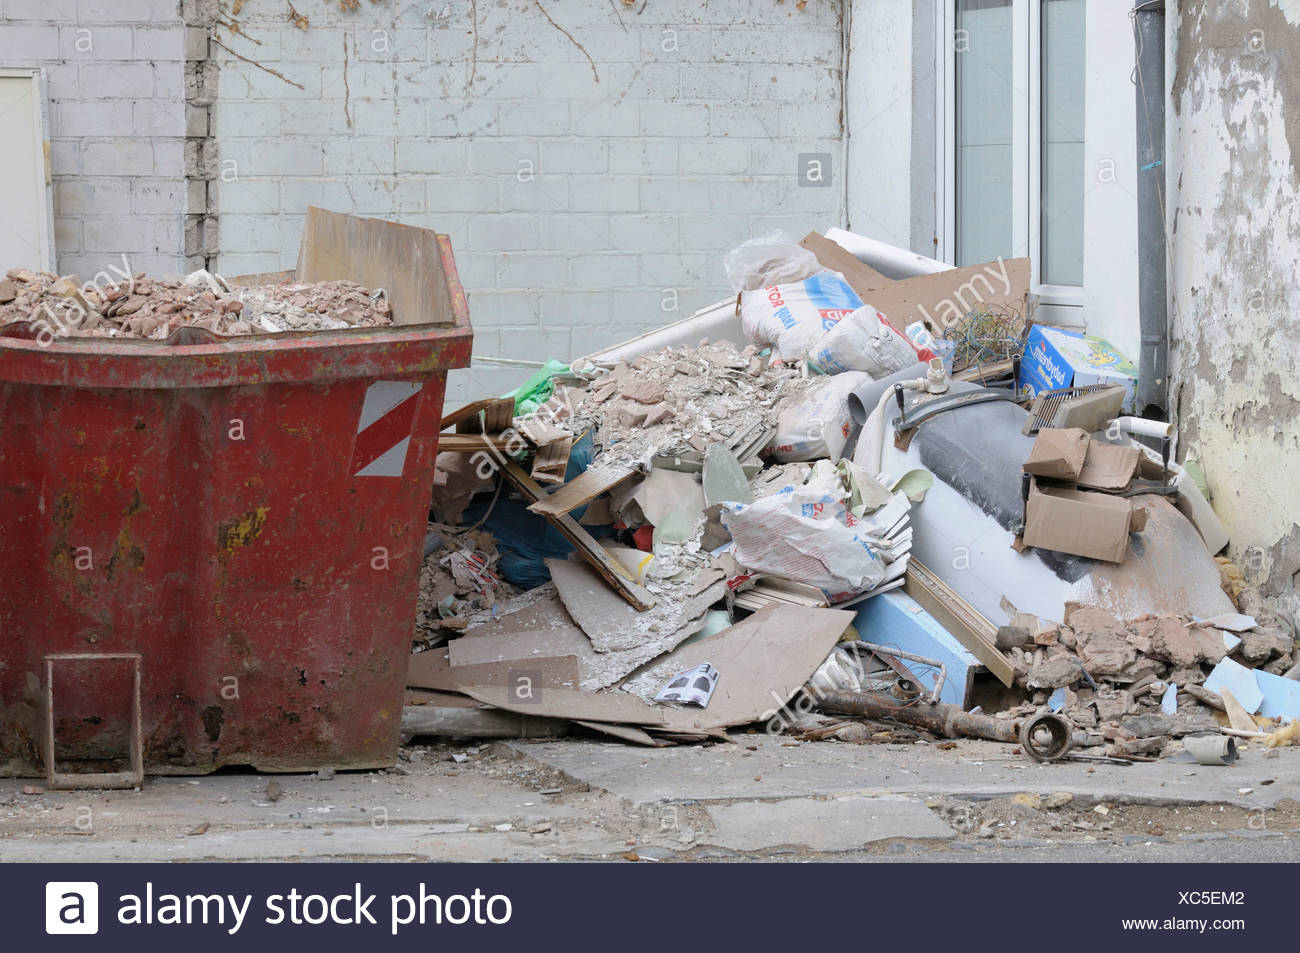 Tenement reconstruction, filled red skip, pile of debris on the side, new window at back - Stock Image